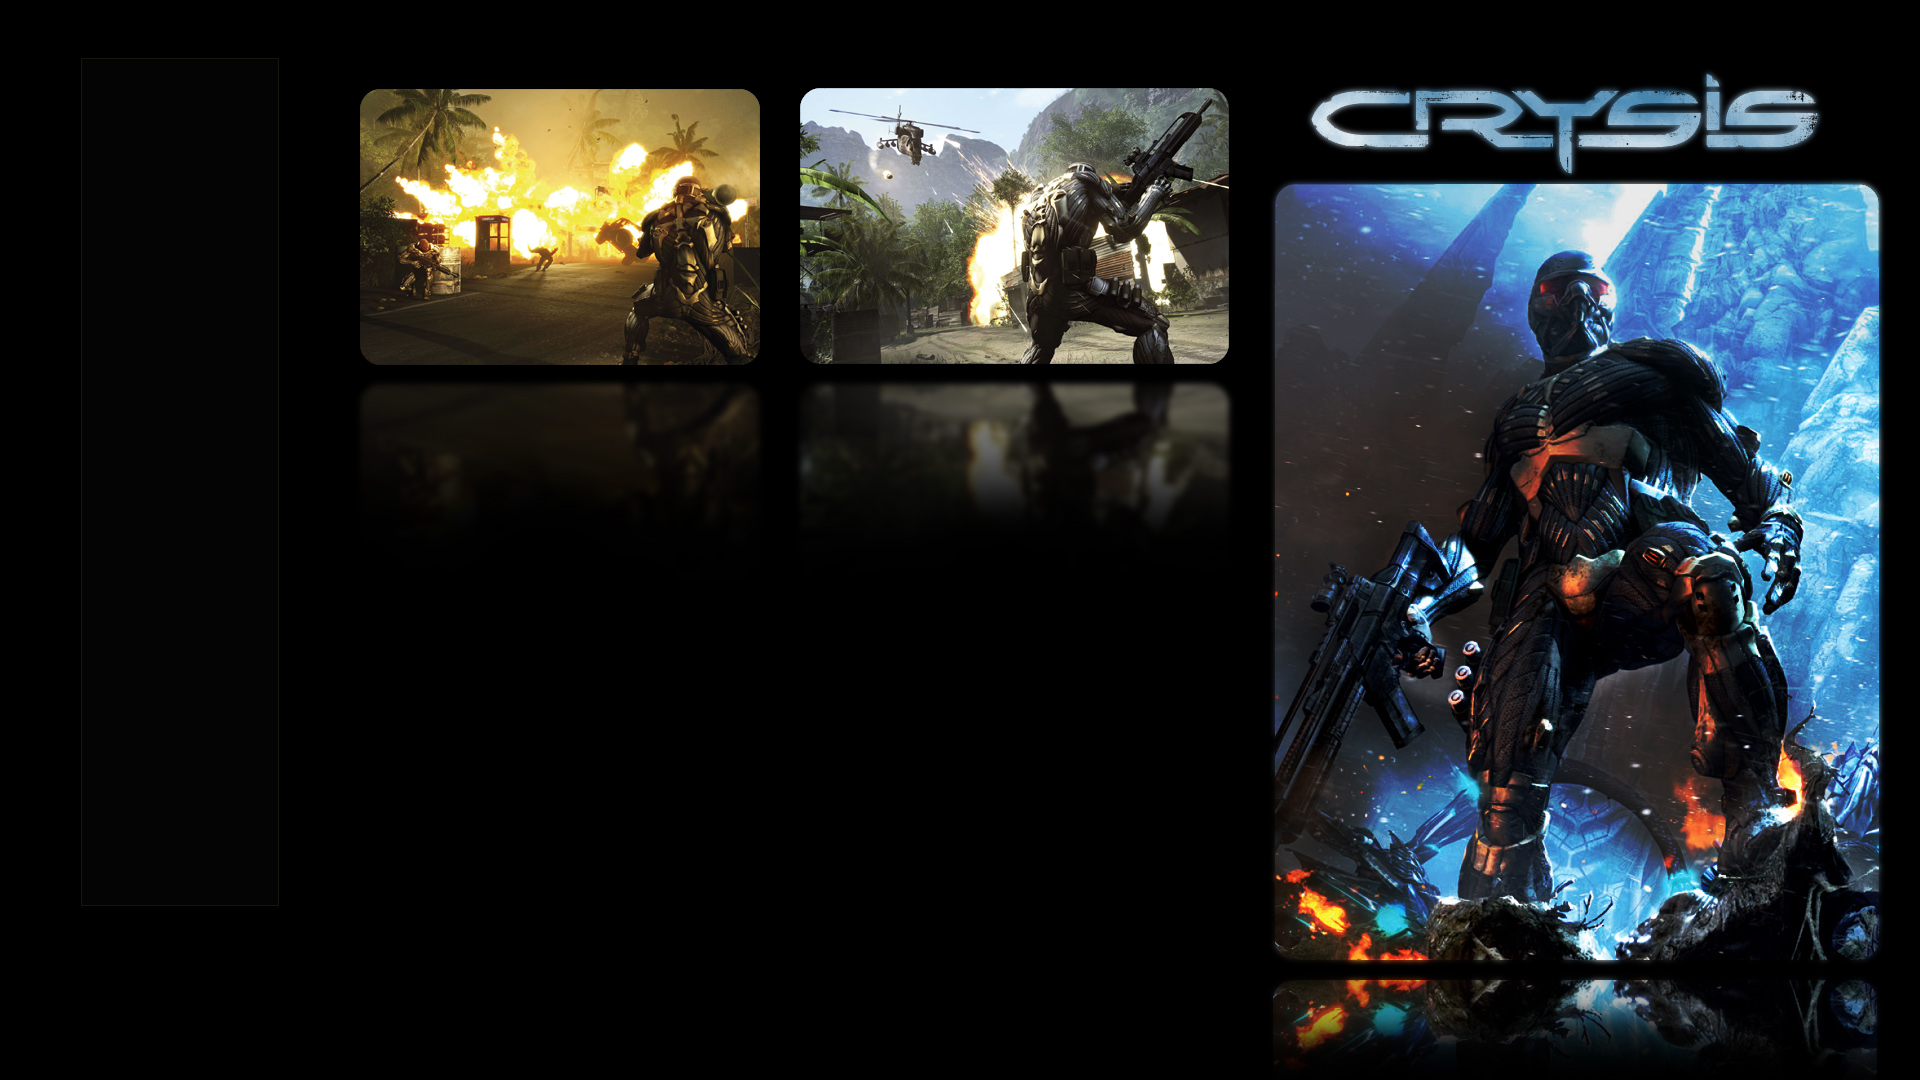 Crysis w/Black Background Wallpapers